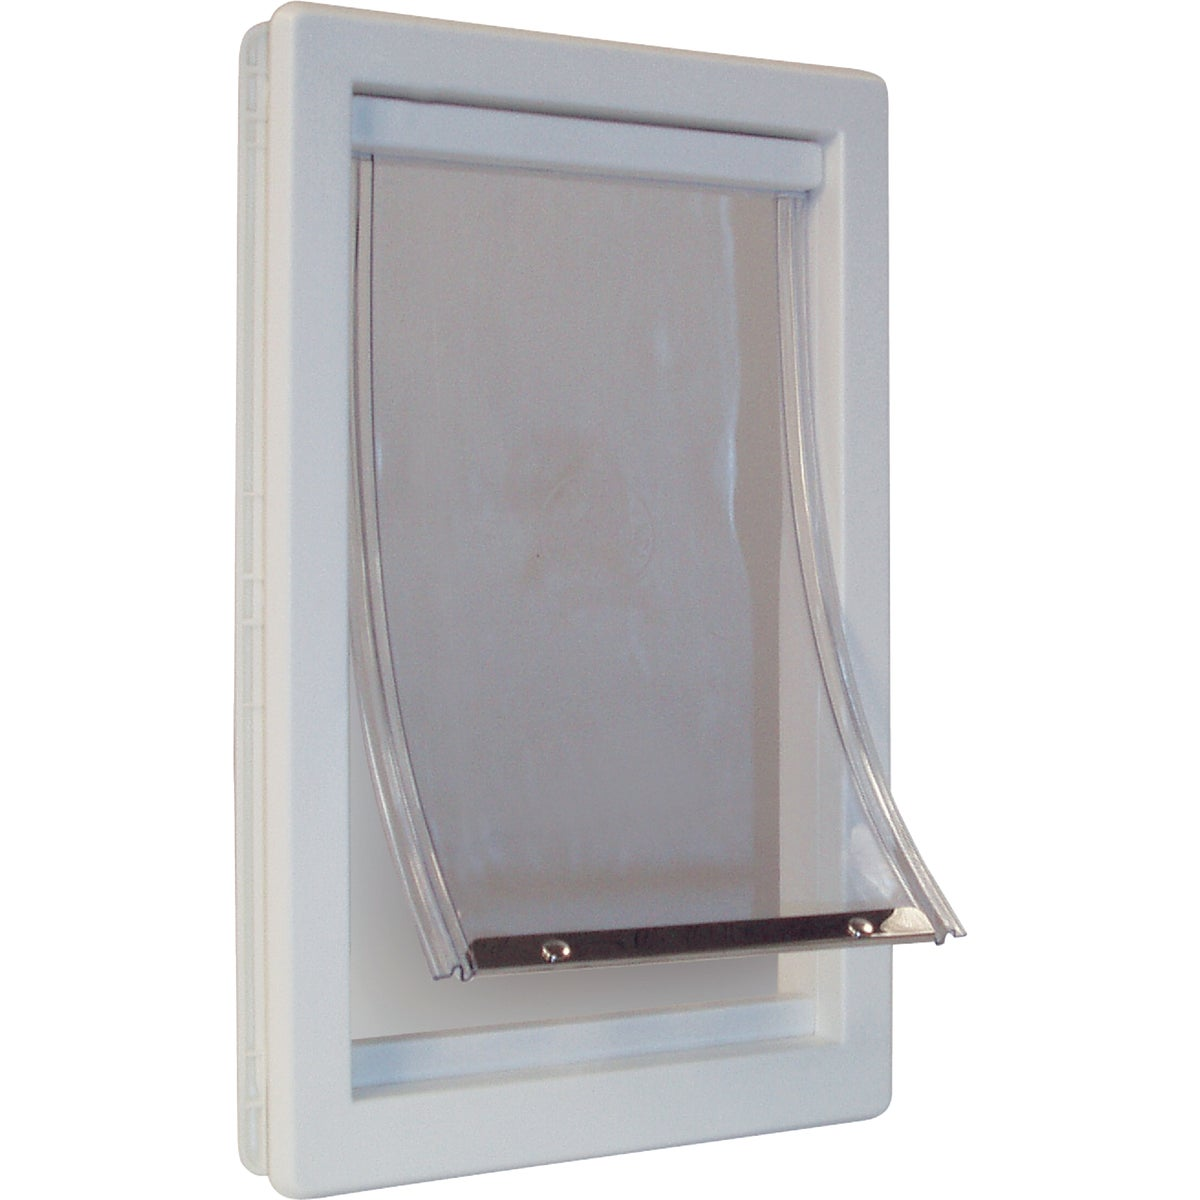 SUPER LRG PLSTC PET DOOR